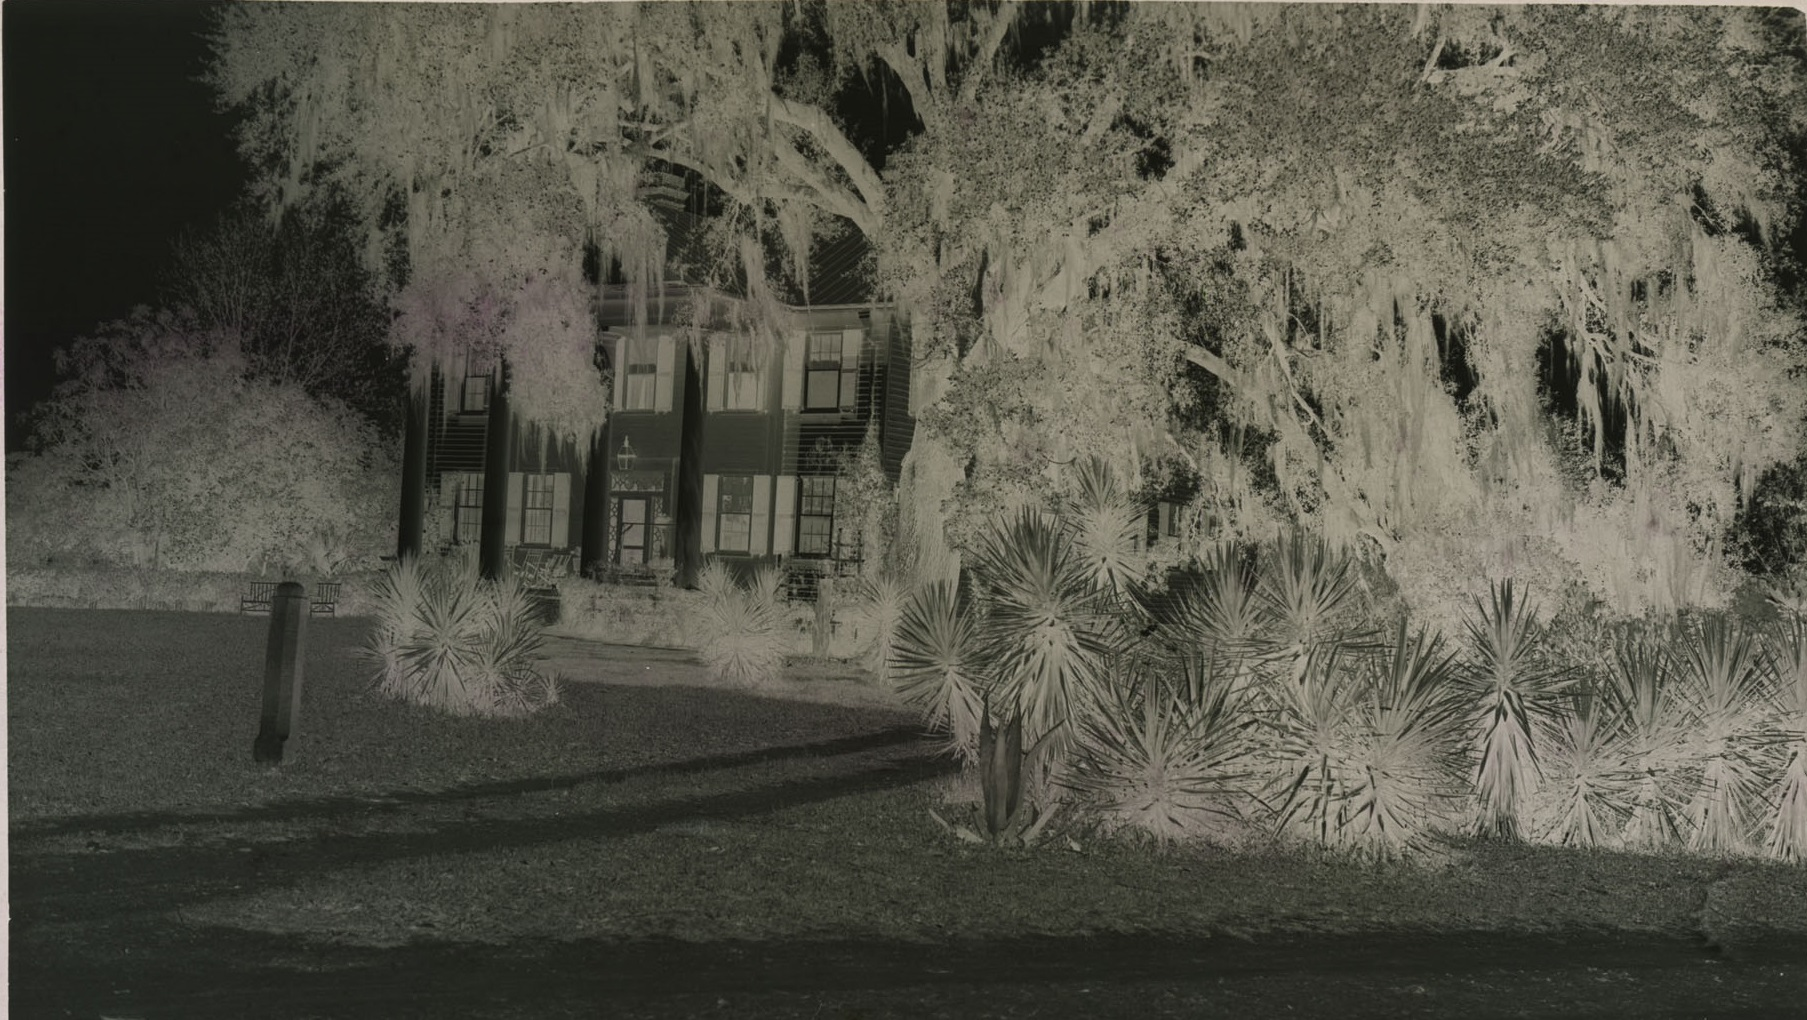 Film negative of Gippy Plantation mansion, located in Berkeley County, South Carolina